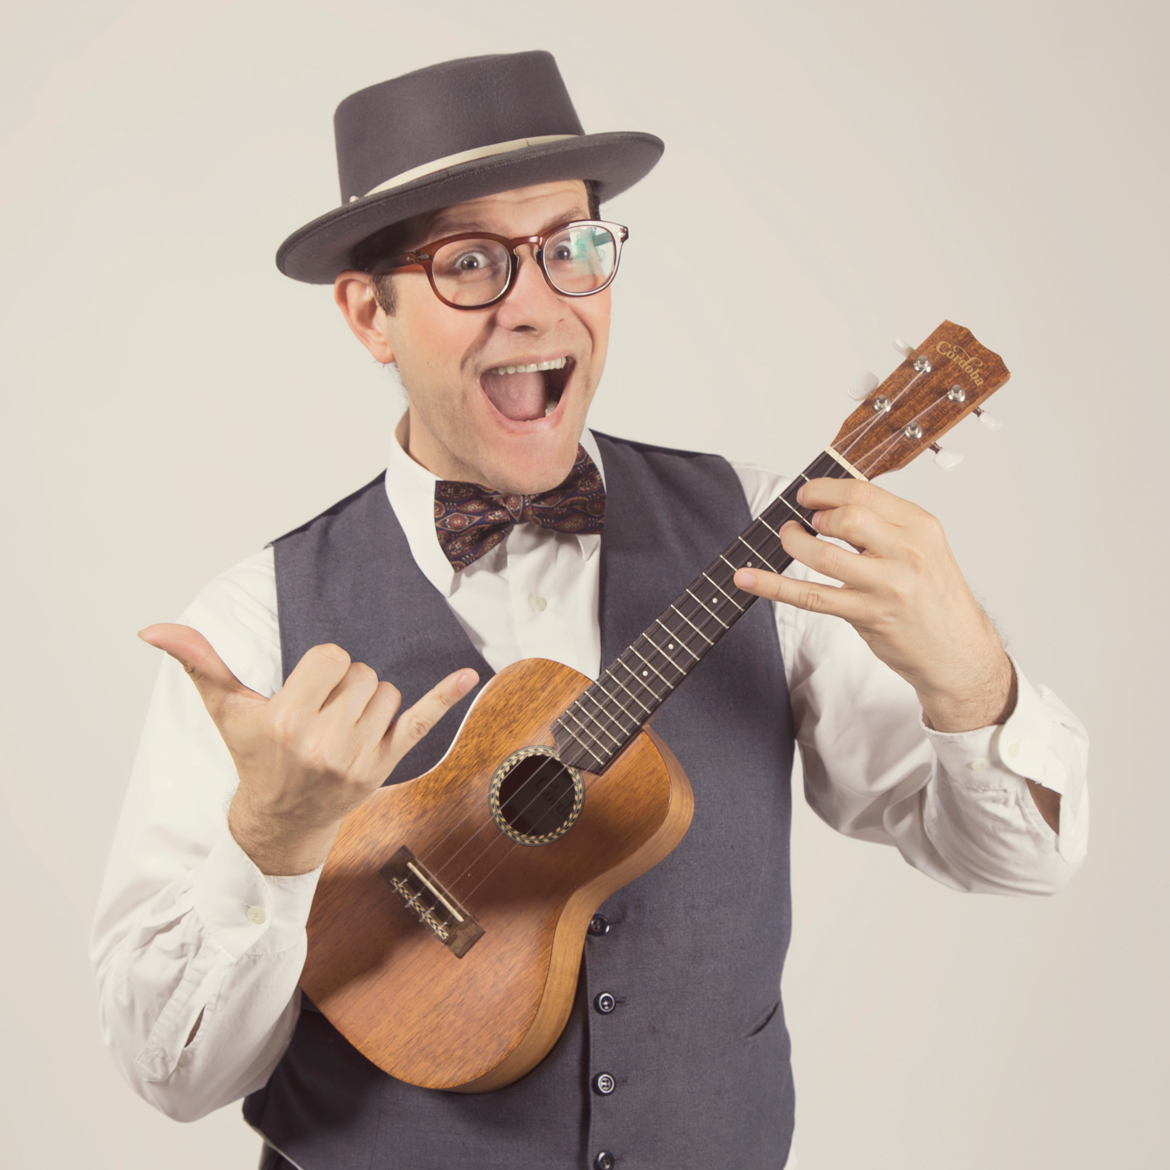 Guy holding ukulele instrument